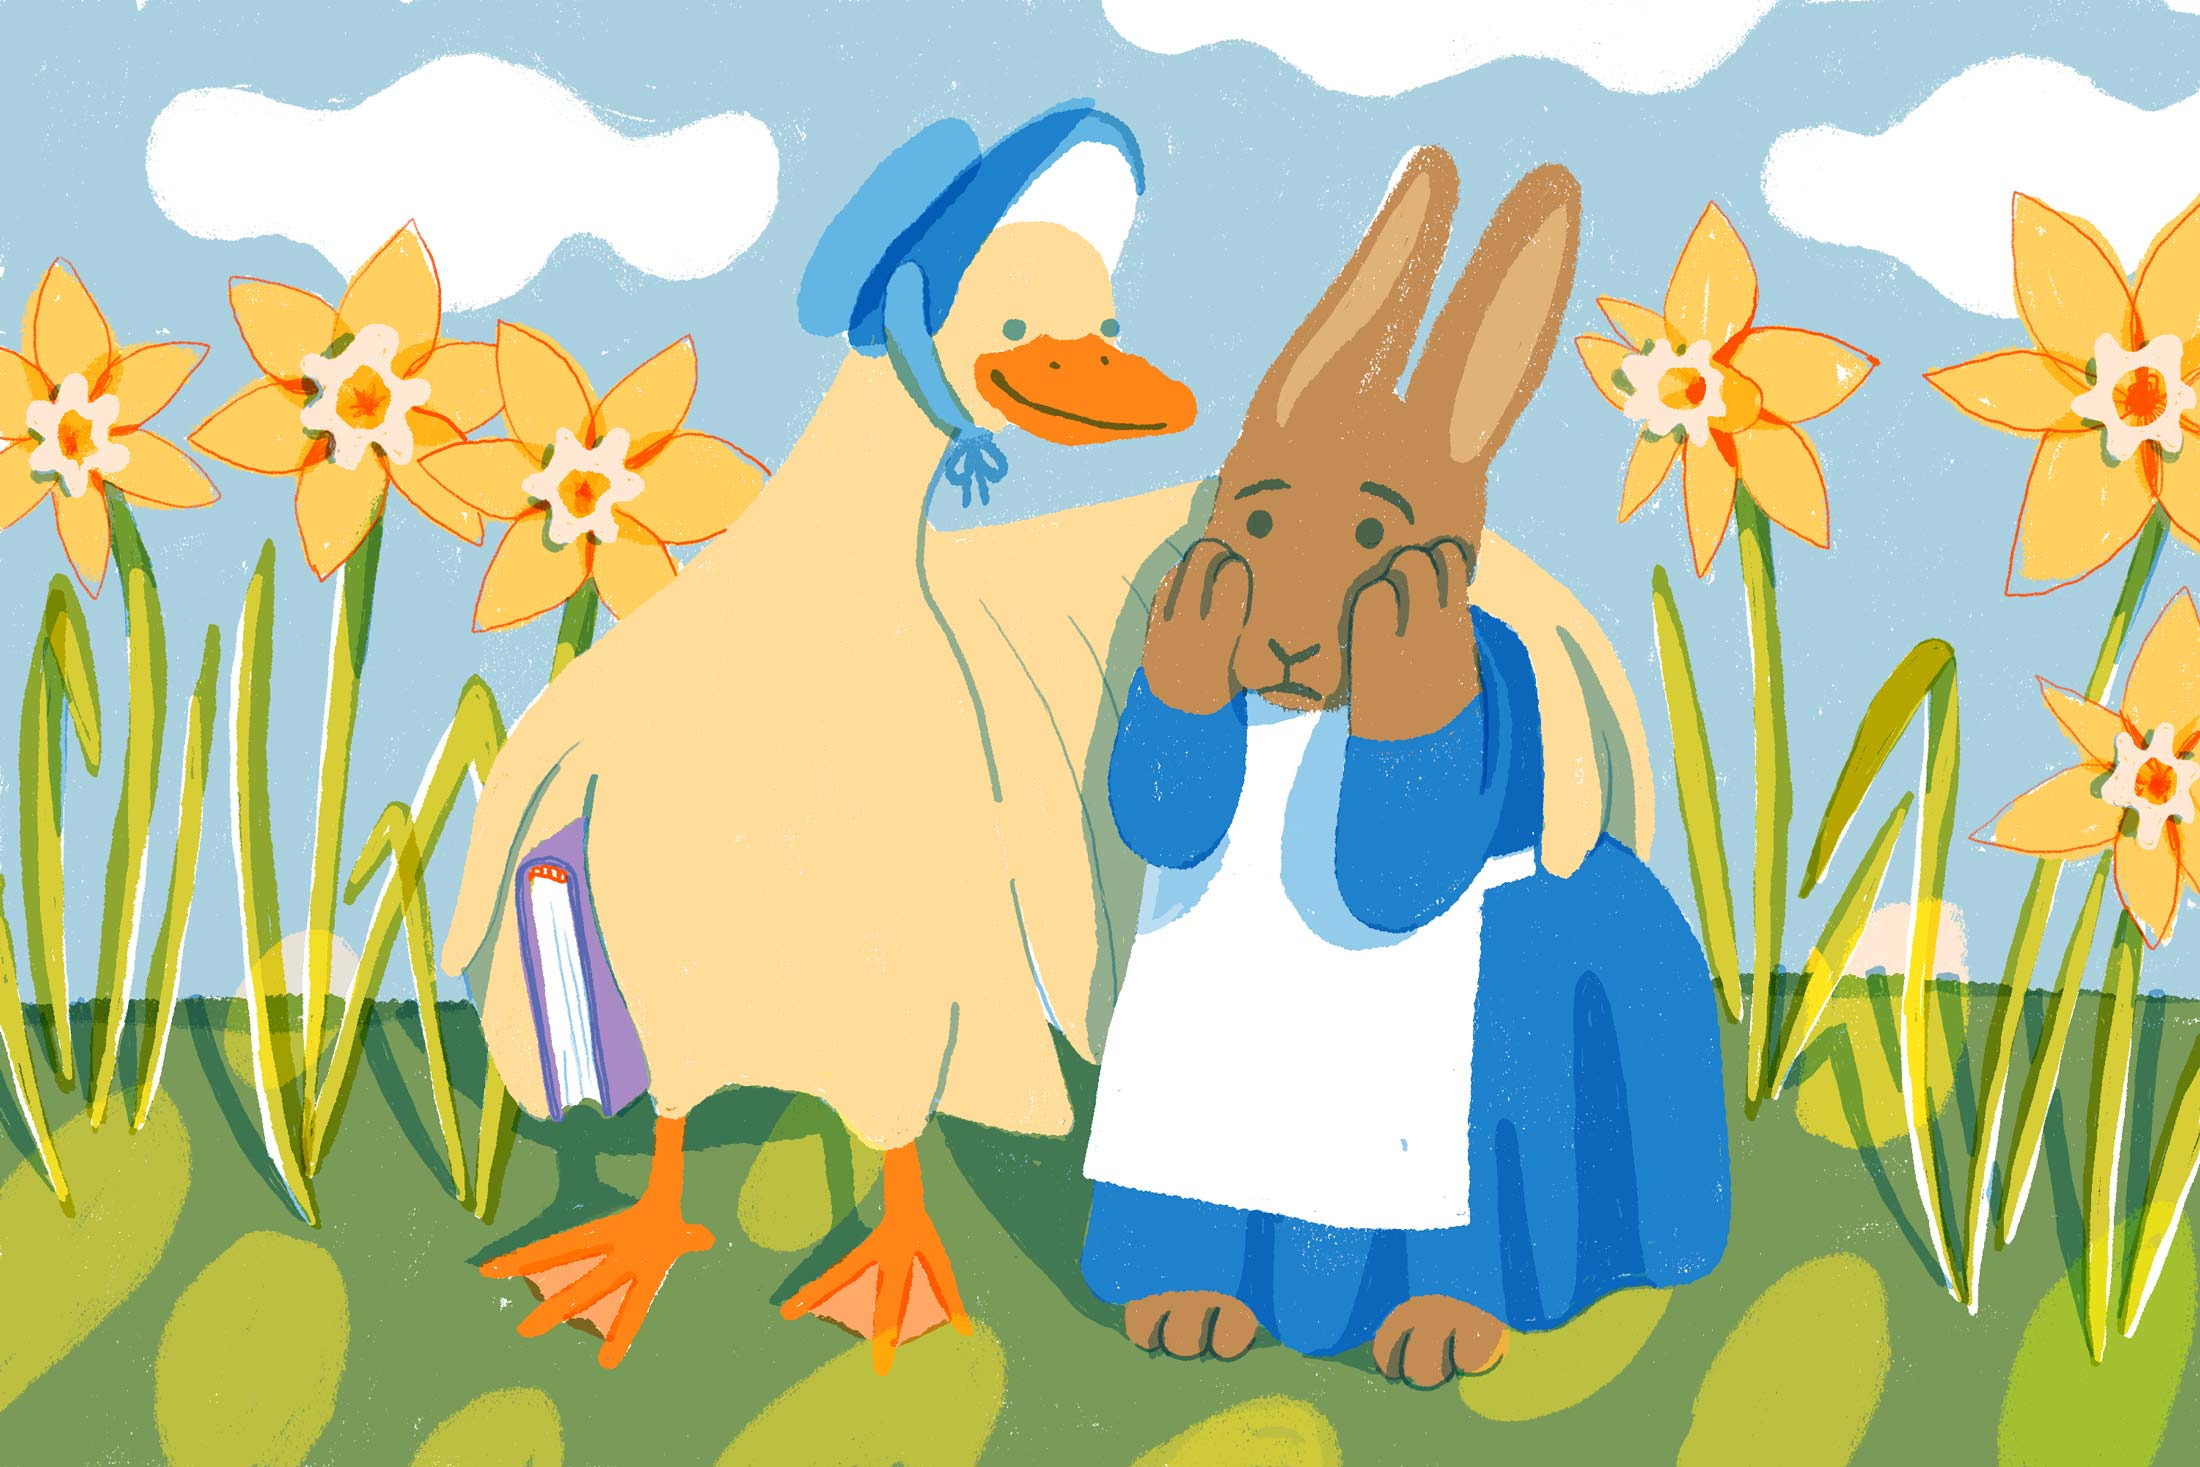 Goose wearing a bonnet consoling a stressed rabbit wearing a dress and apron.